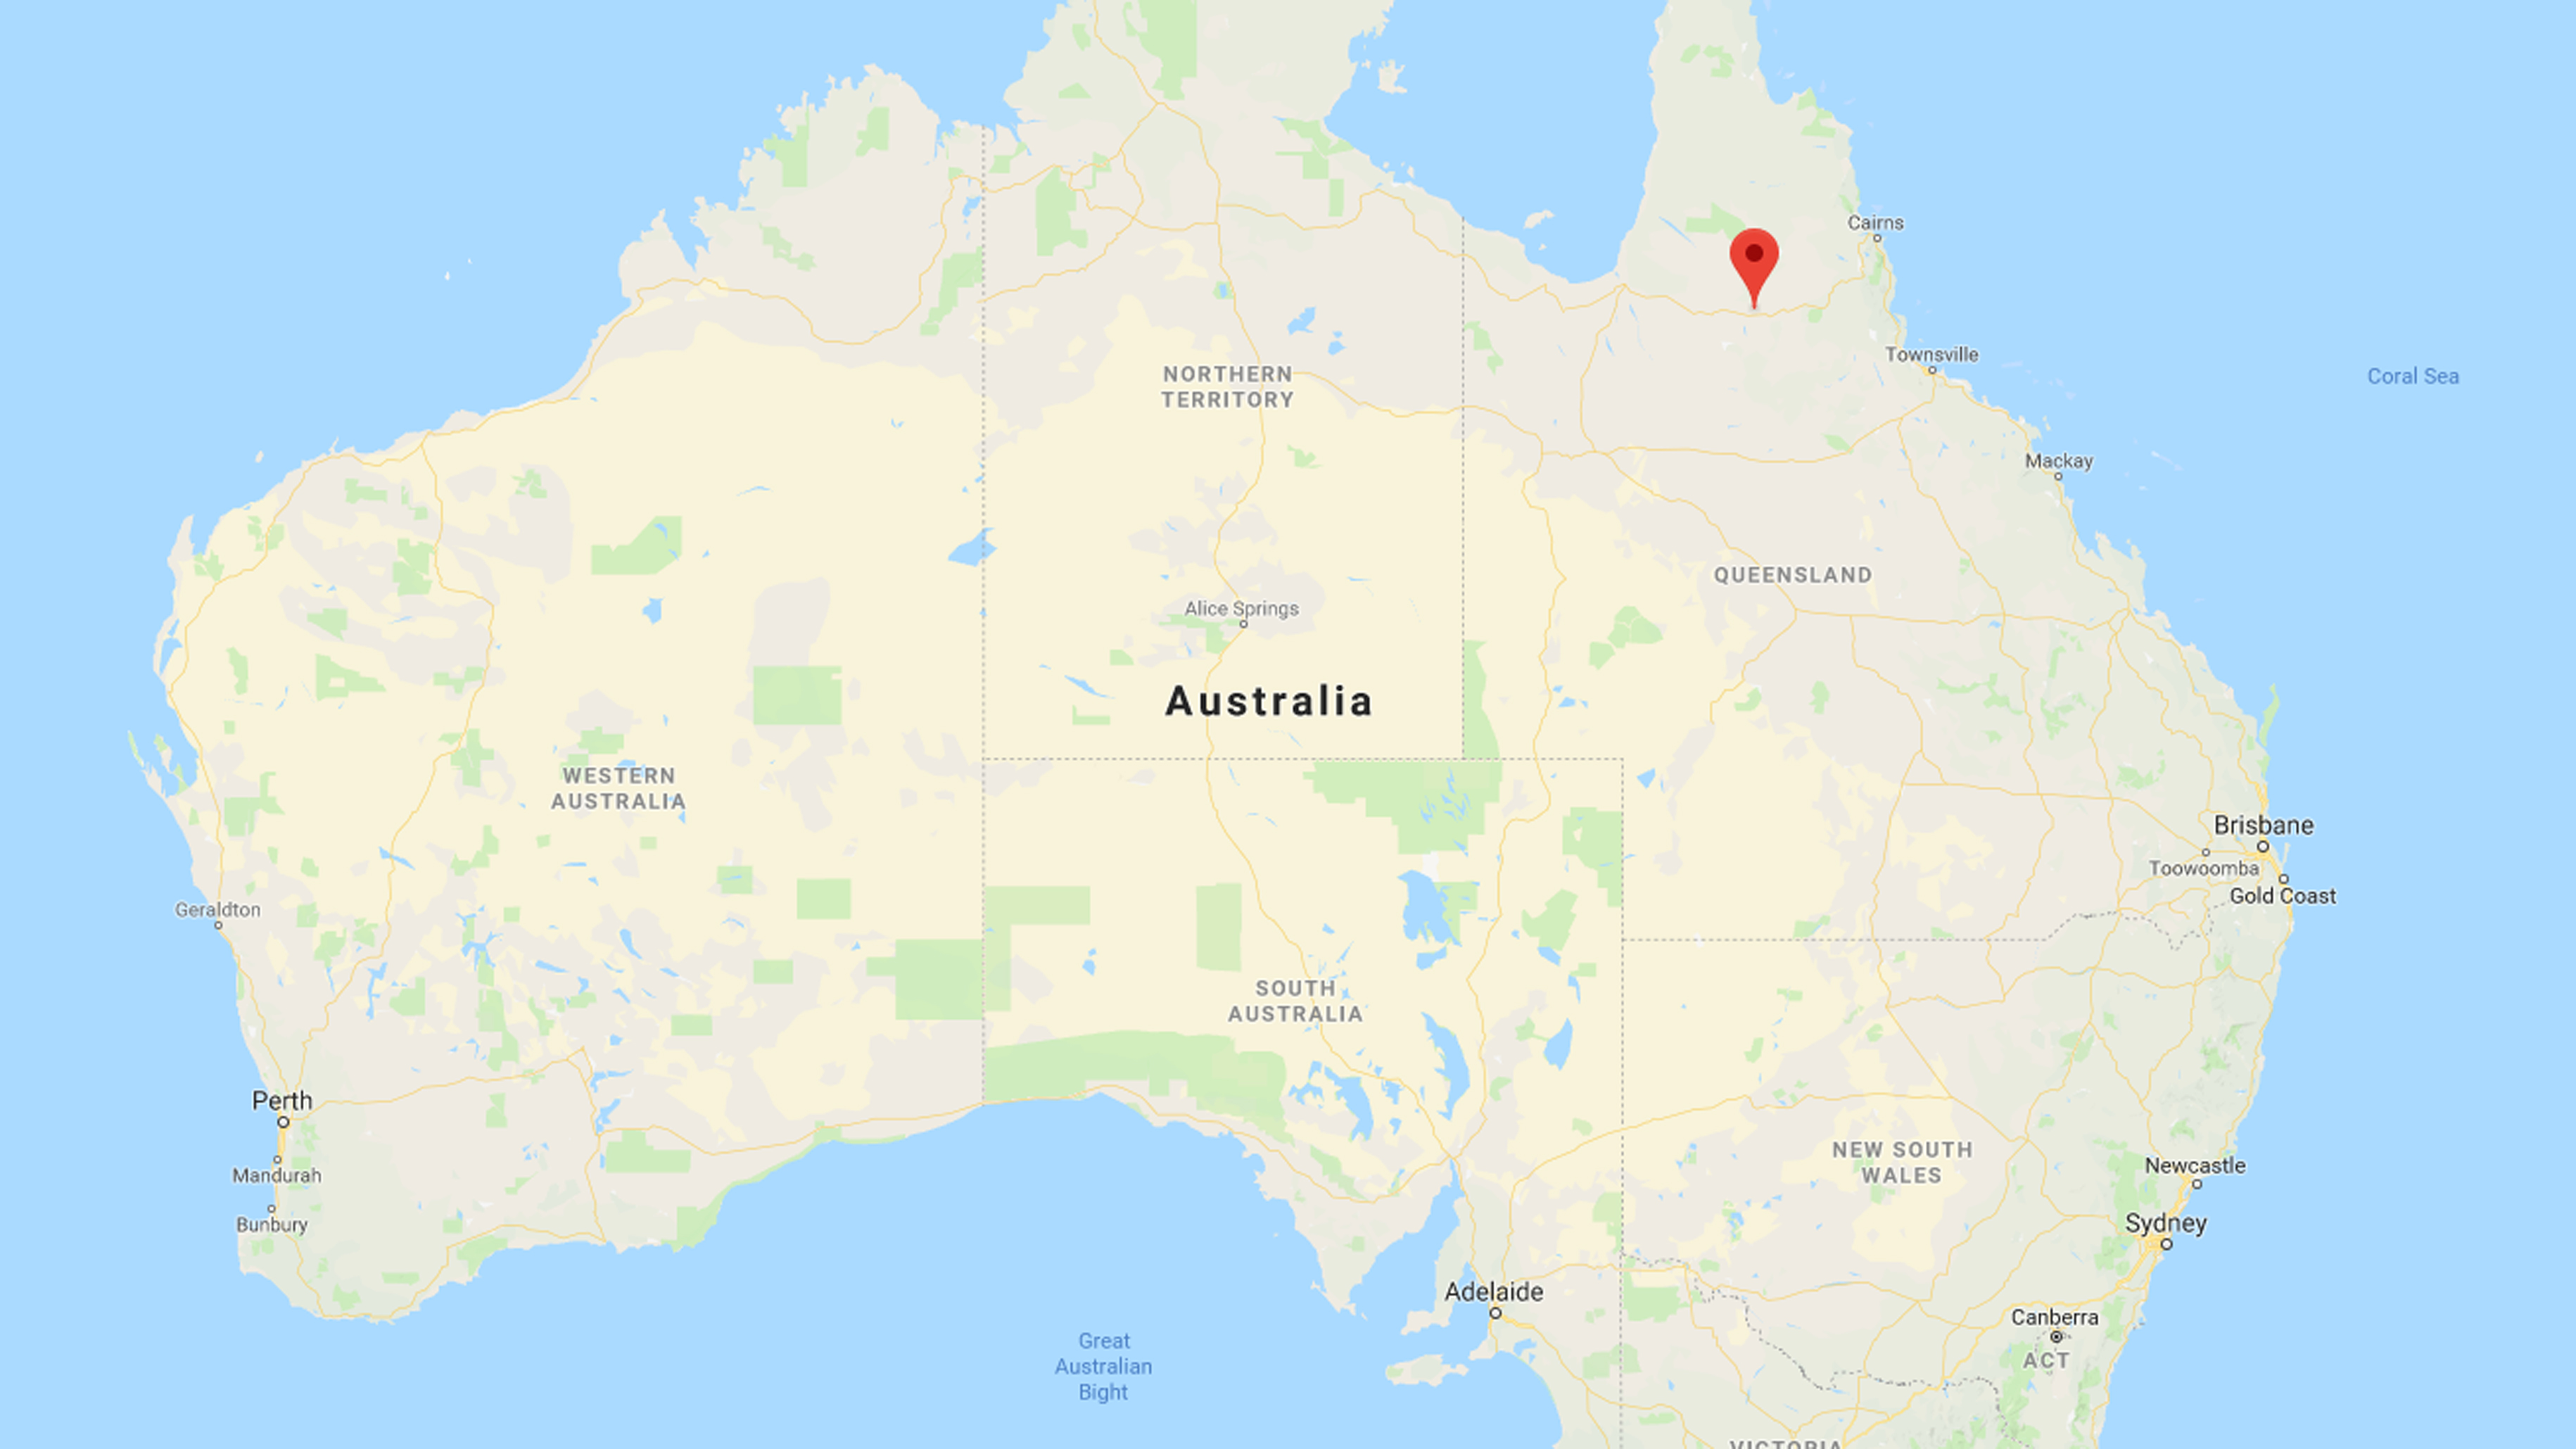 1.7 billion-year-old chunk of Canada found in Australia, suggesting supercontinent